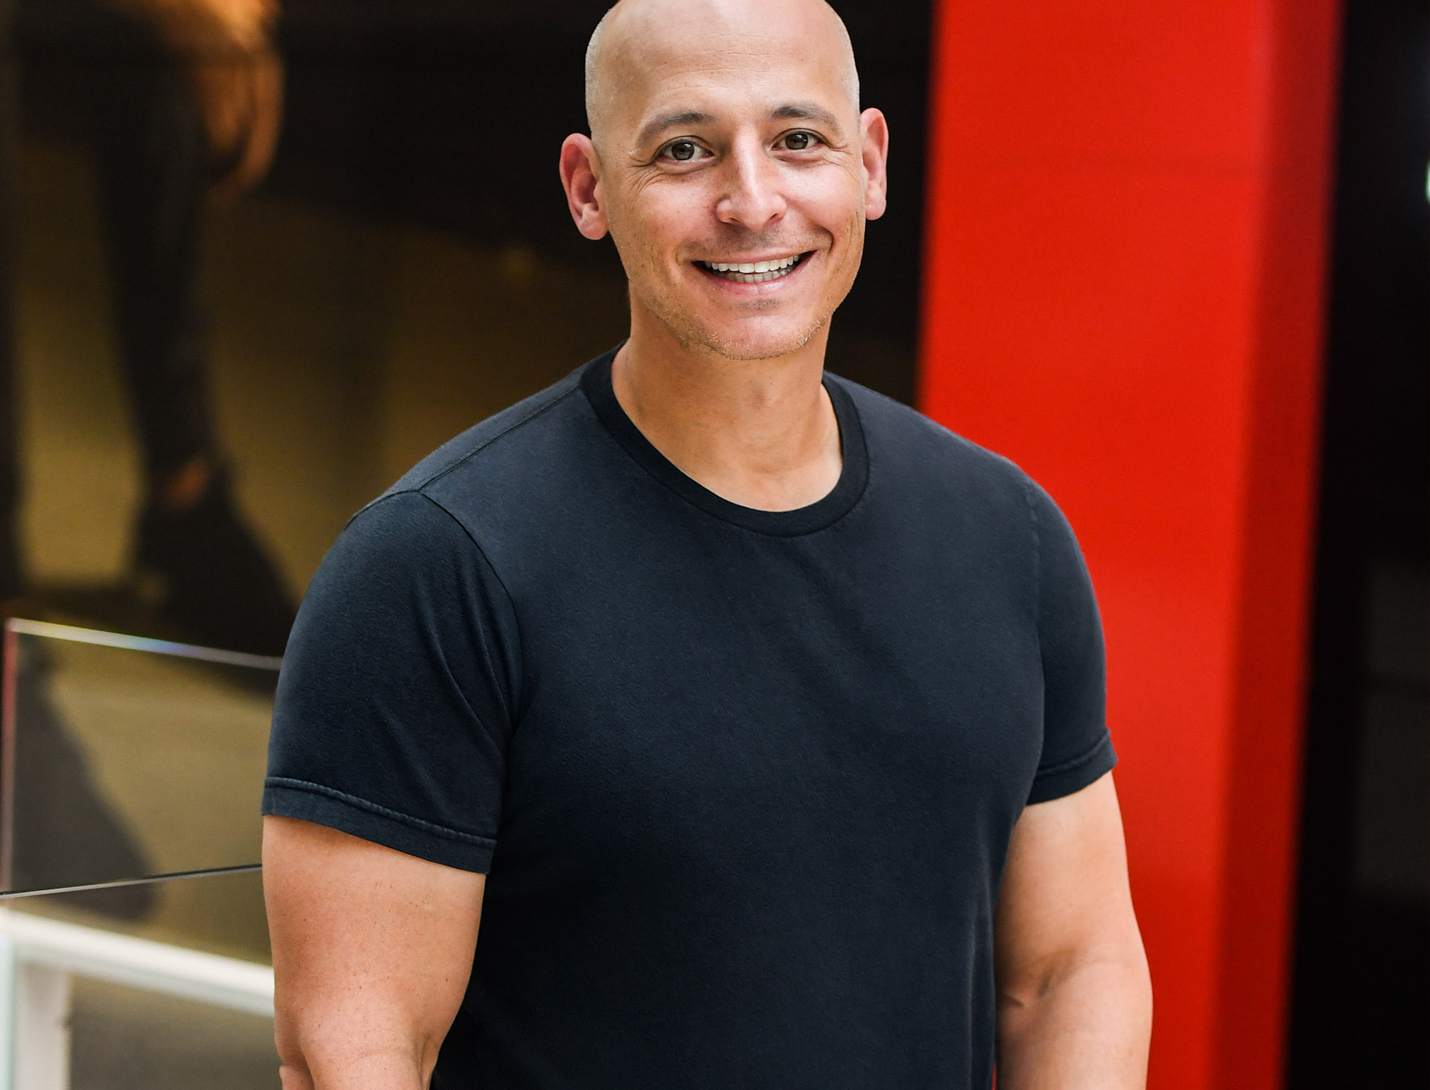 Harley Pasternak - Fitness Tips for Women Over 45